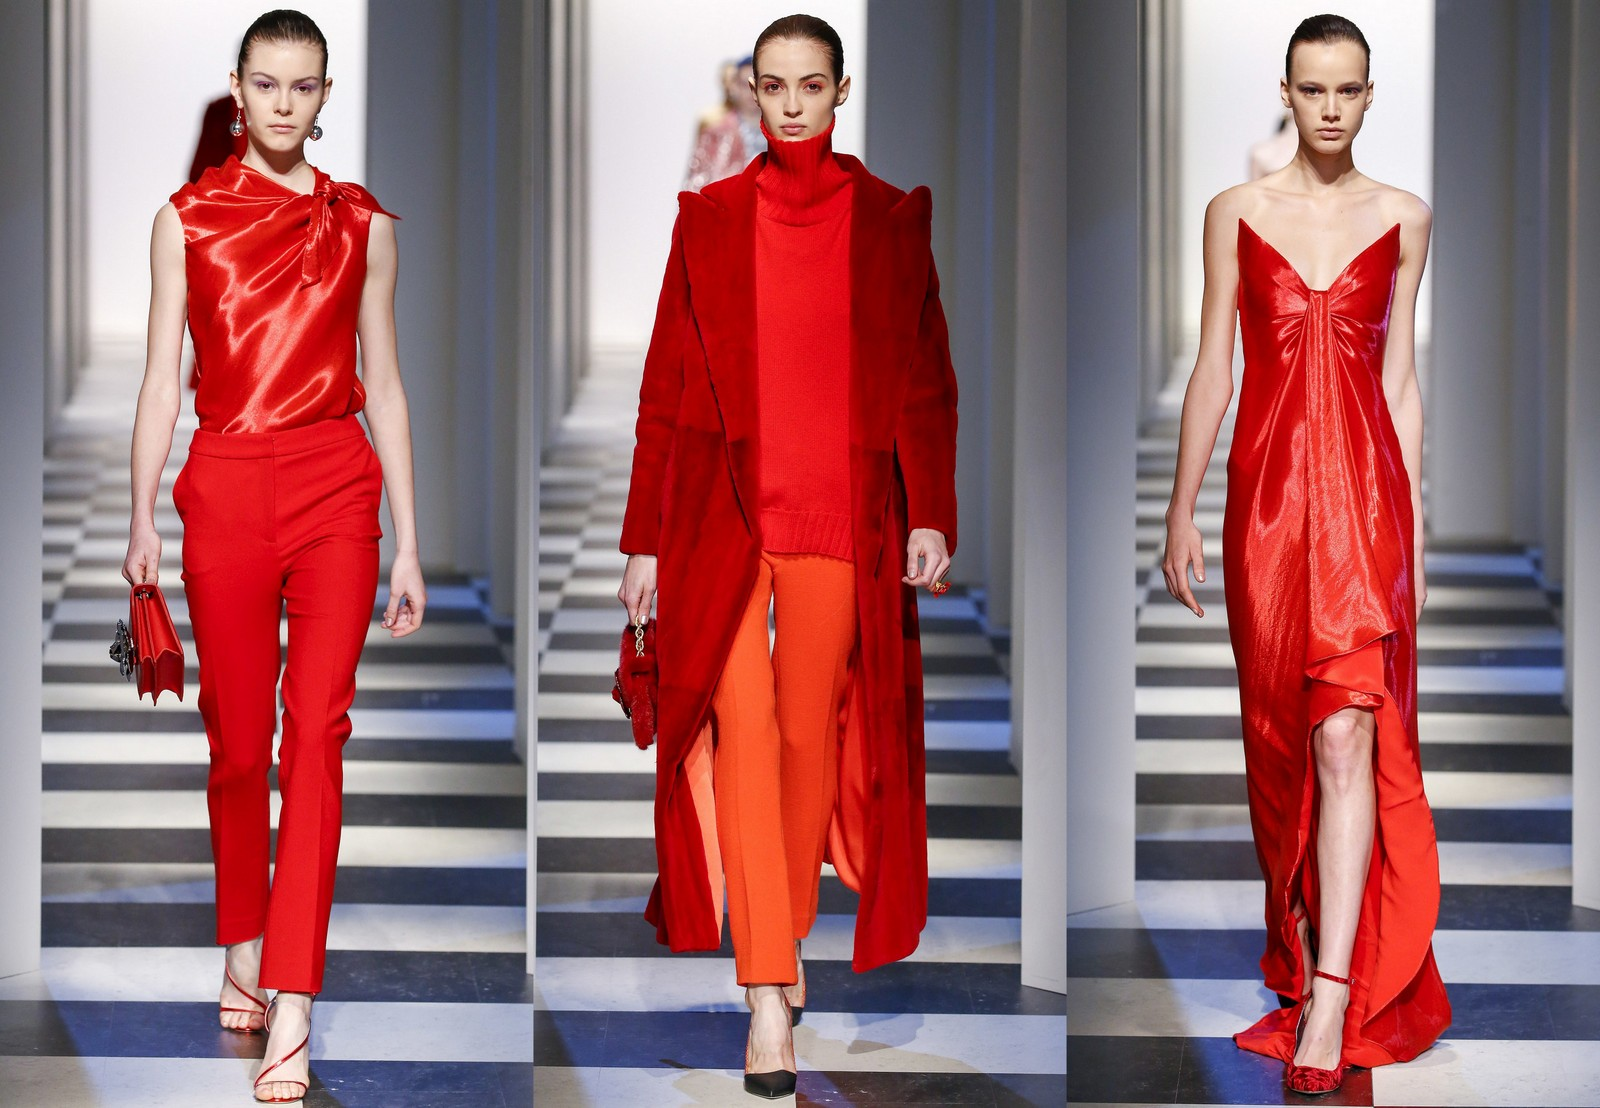 Fashion Inspiration : Color Trend Red Fall/Winter 2017 ...